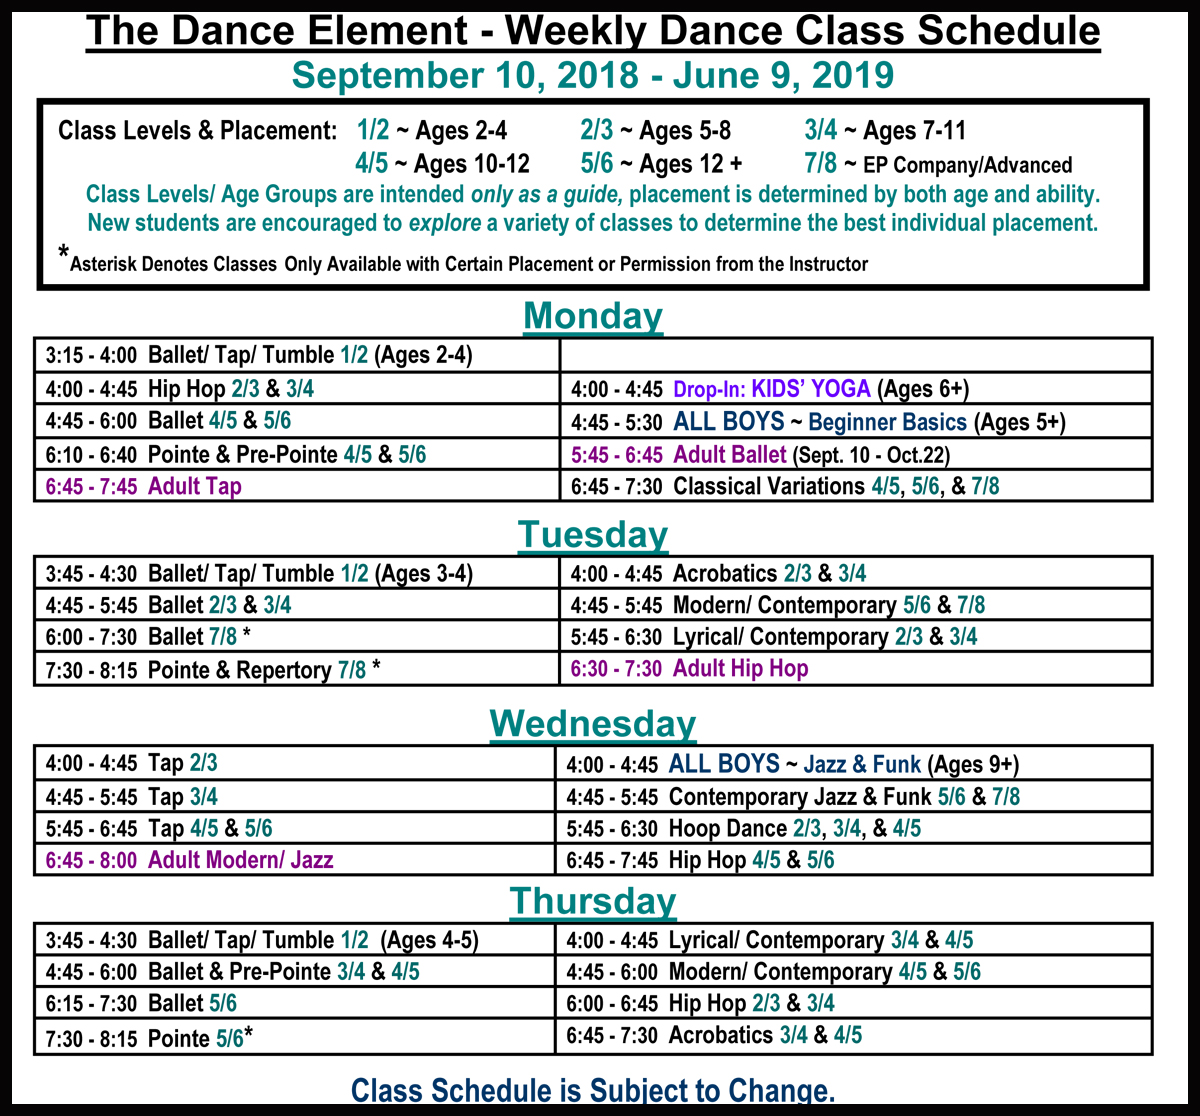 Ballet, Hip Hop, & Dance Classes for Children & Adults in Wilmington NC.